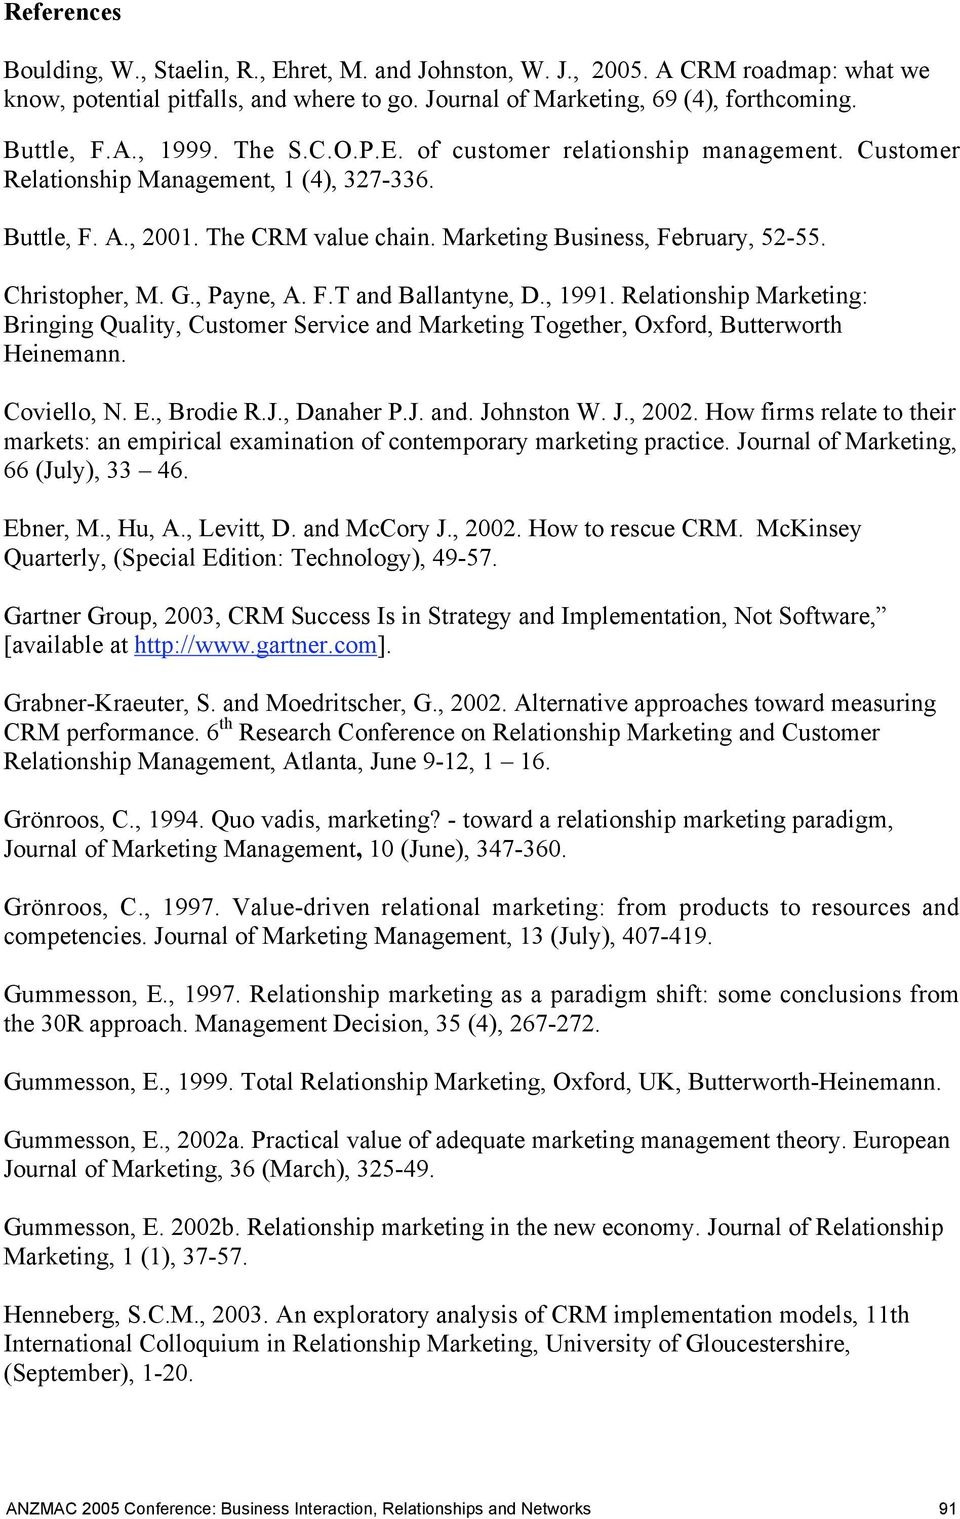 , Payne, A. F.T and Ballantyne, D., 1991. Relationship Marketing: Bringing Quality, Customer Service and Marketing Together, Oxford, Butterworth Heinemann. Coviello, N. E., Brodie R.J., Danaher P.J. and. Johnston W.